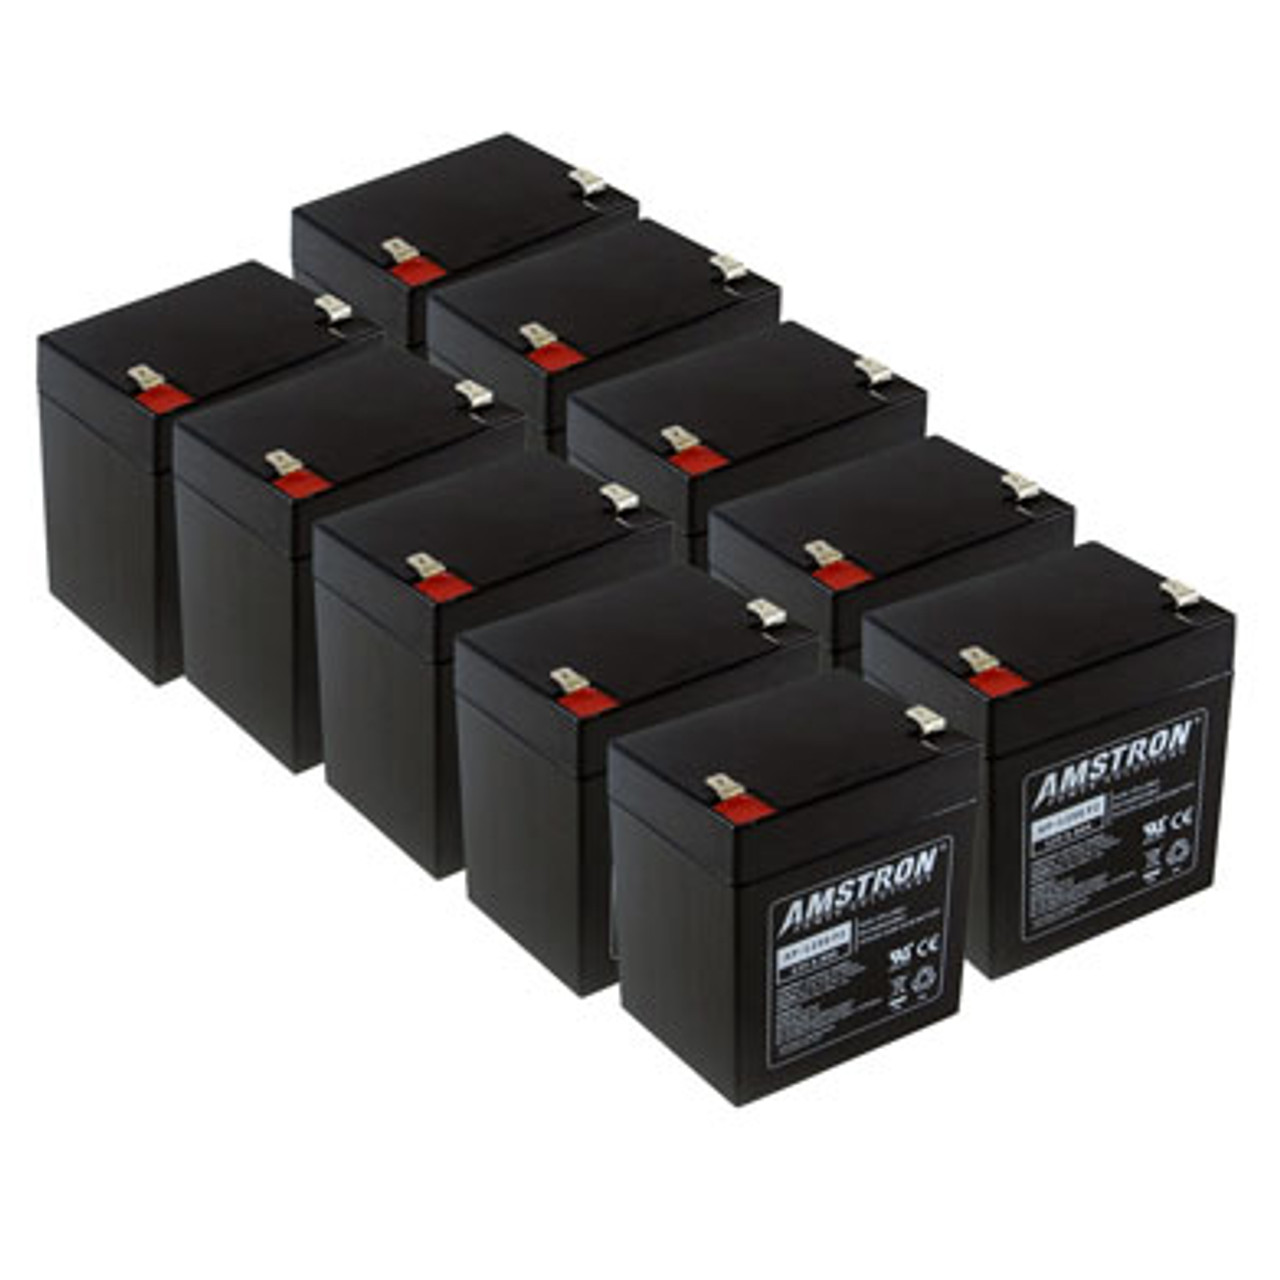 Amstron Replacement UPS Battery for APC RBC143